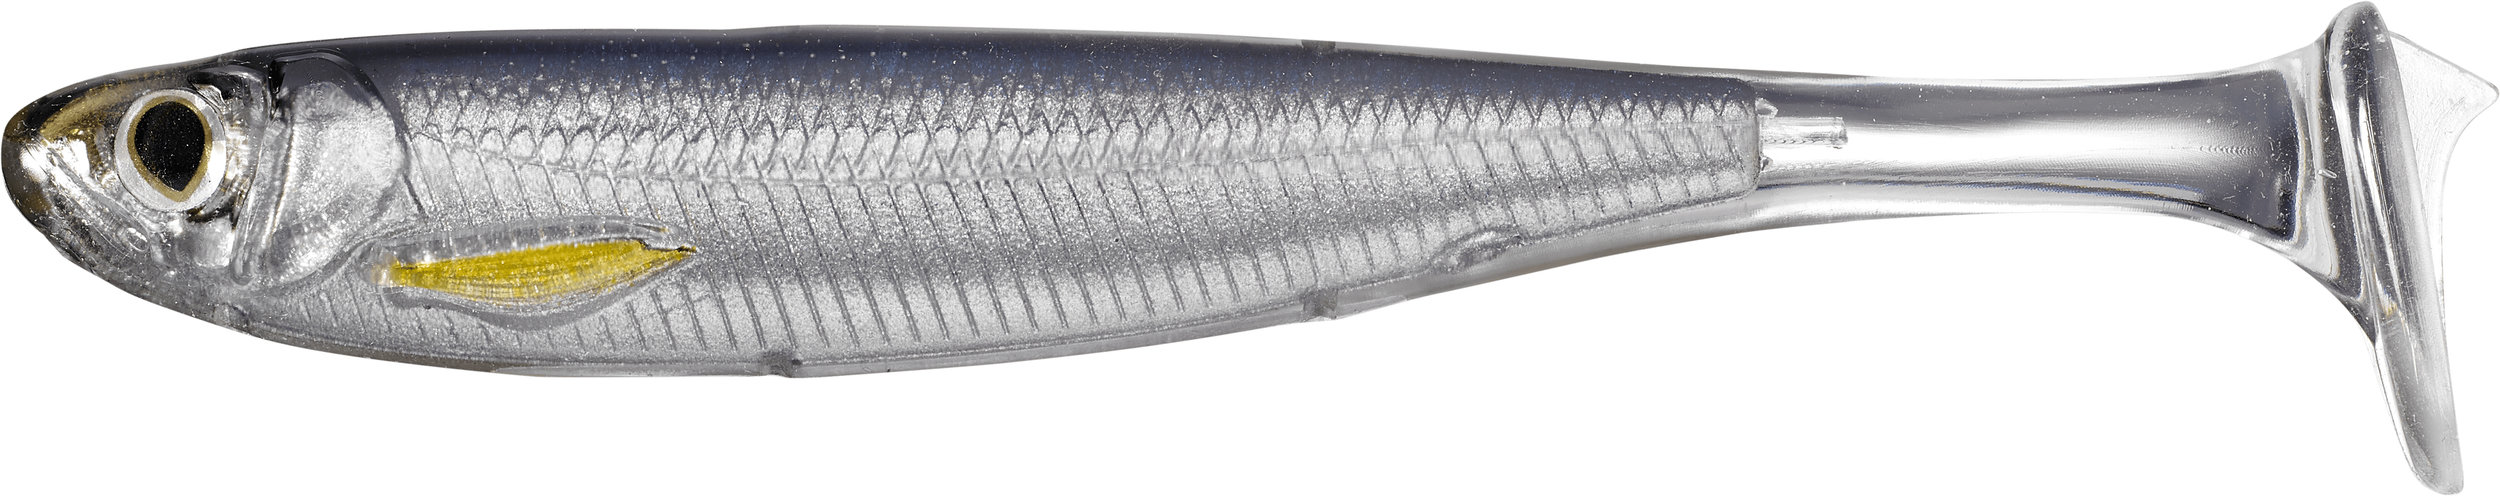 Booth 2508. Ideal for freshwater and saltwater, LIVETARGET's Slow-Roll Shiner is an unrigged swimbait that mimics a fleeing thin-profiled baitfish and features Injected Core Technology™ (ICT), offering improved baitfish profile and detail over traditional paddletail swimbaits. Comes in 3 sizes and 6 colors. MSRP: $9.99.